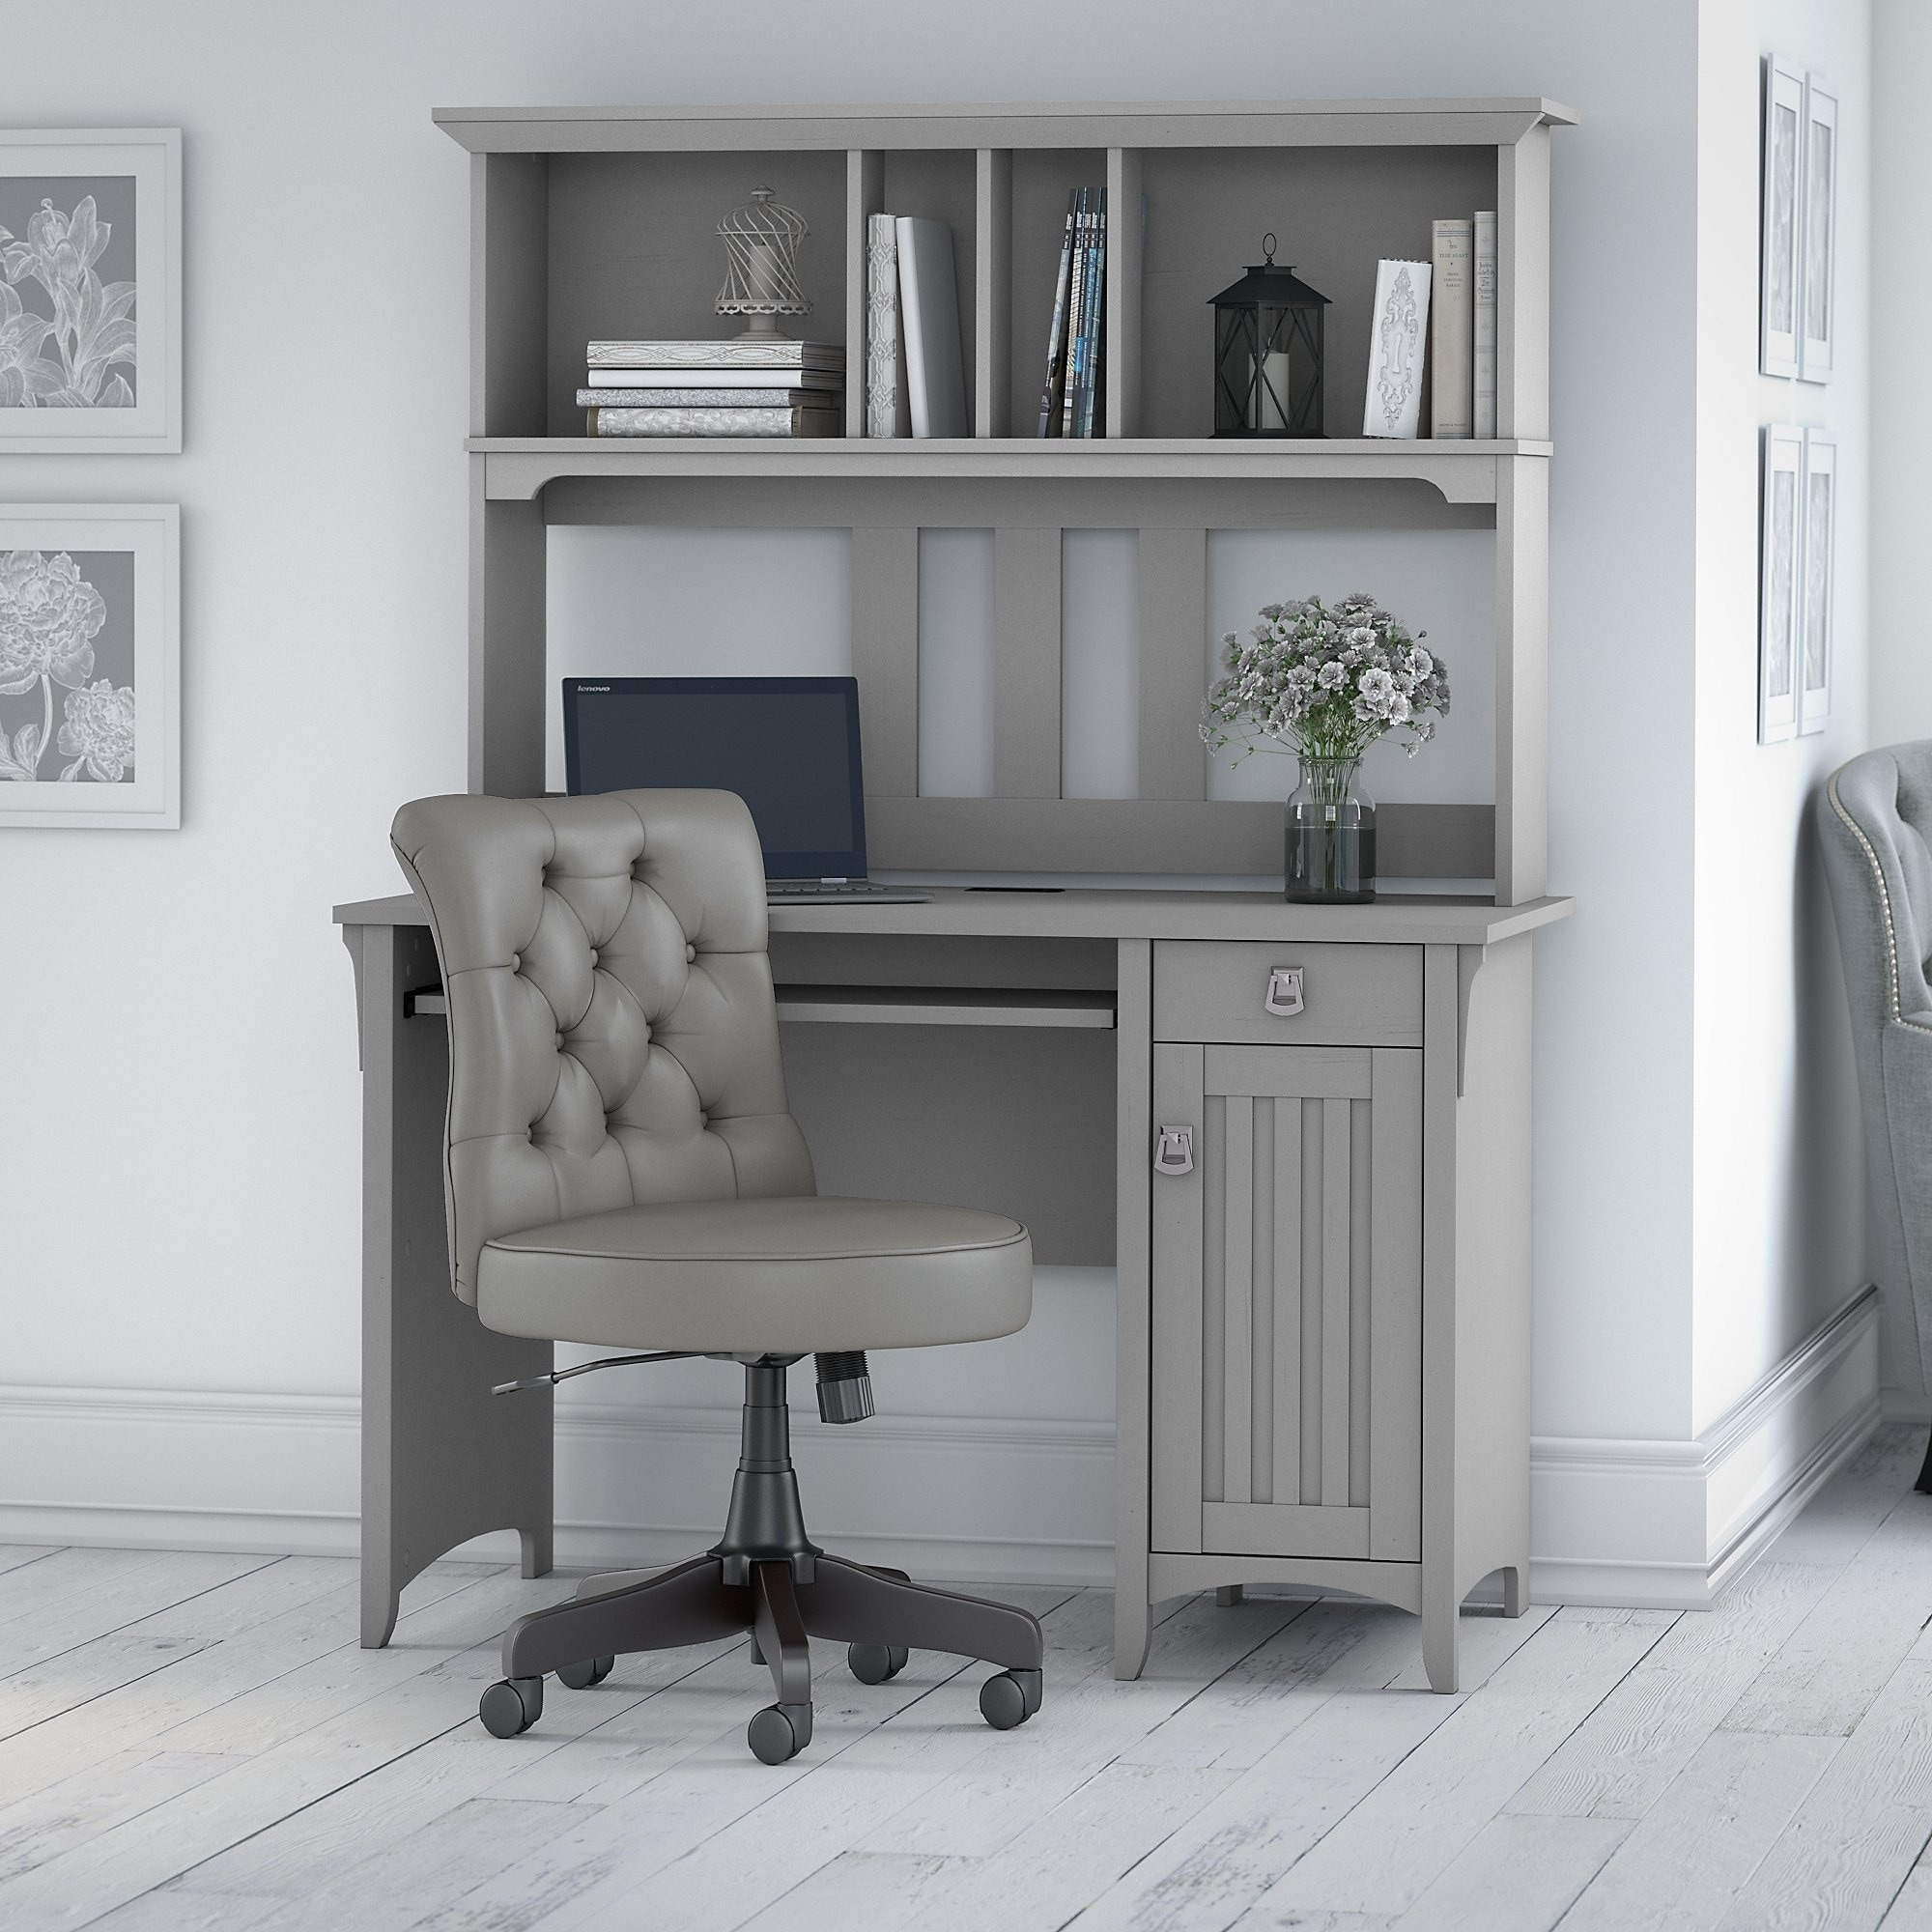 The Gray Barn Hickory Place Computer Desk With Hutch And Office Chair